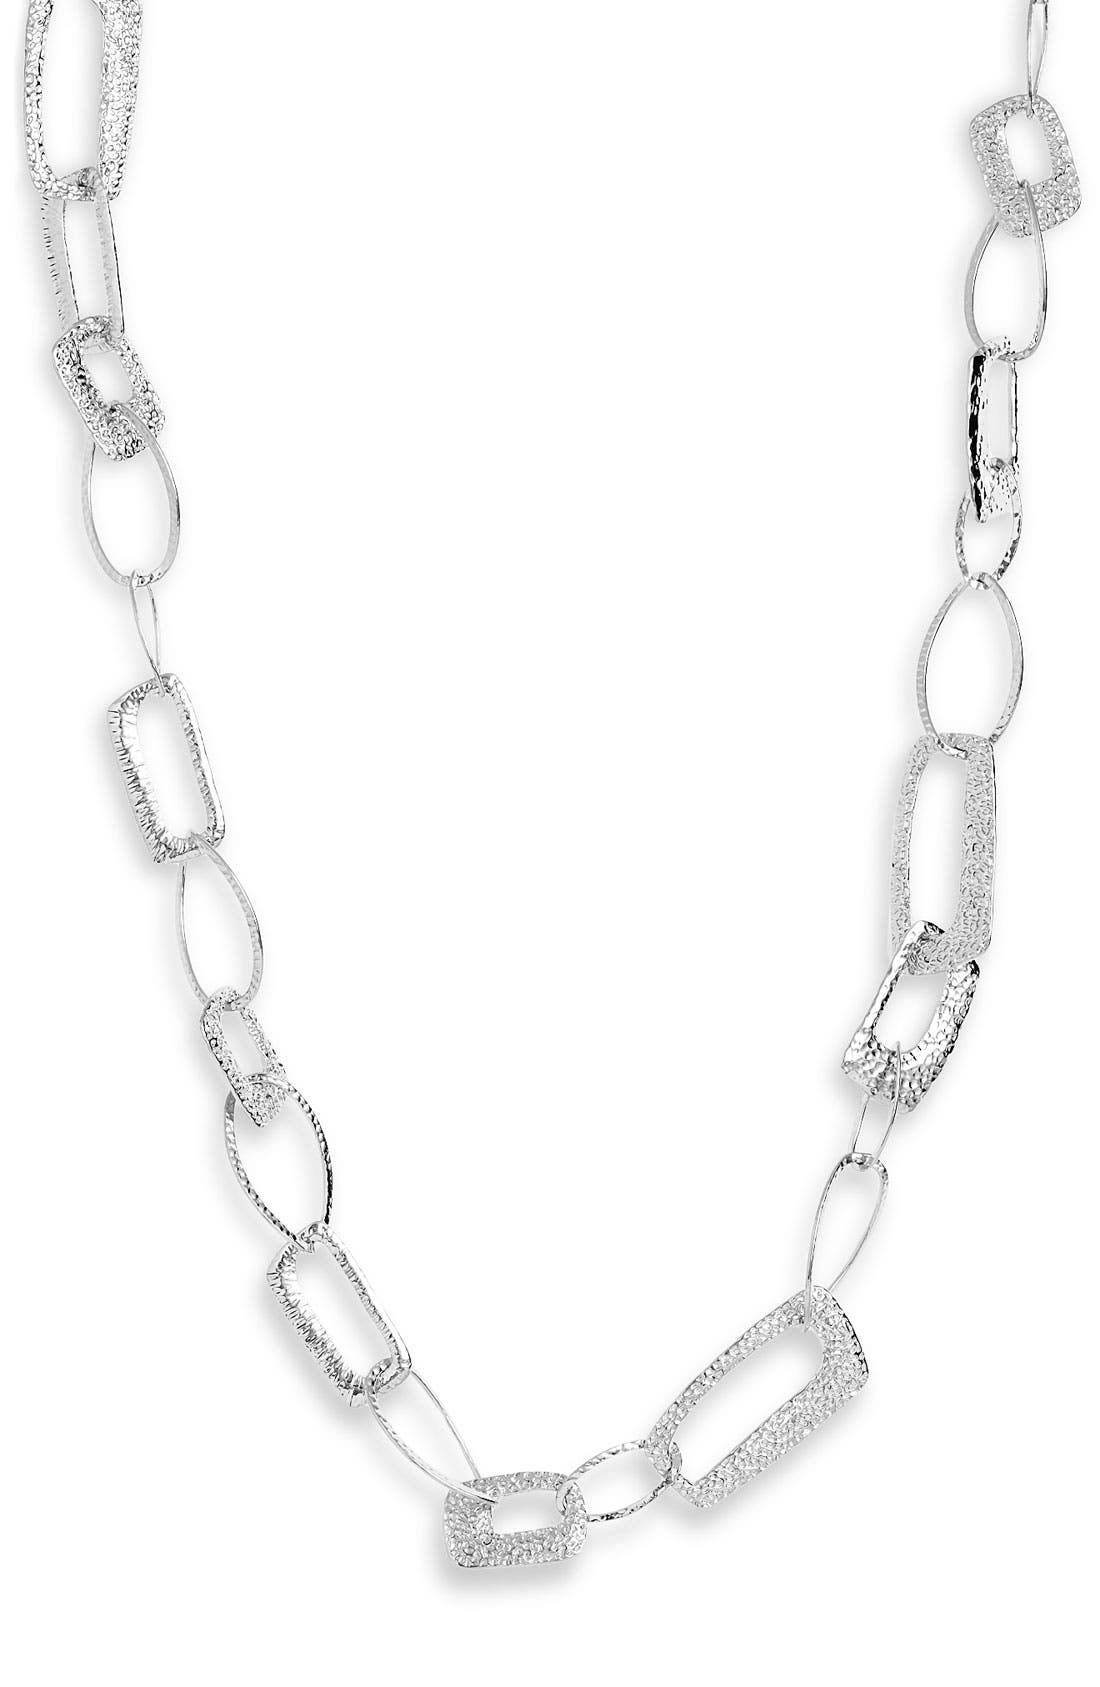 Main Image - Nordstrom 'Neo Geometric' Long Textured Necklace